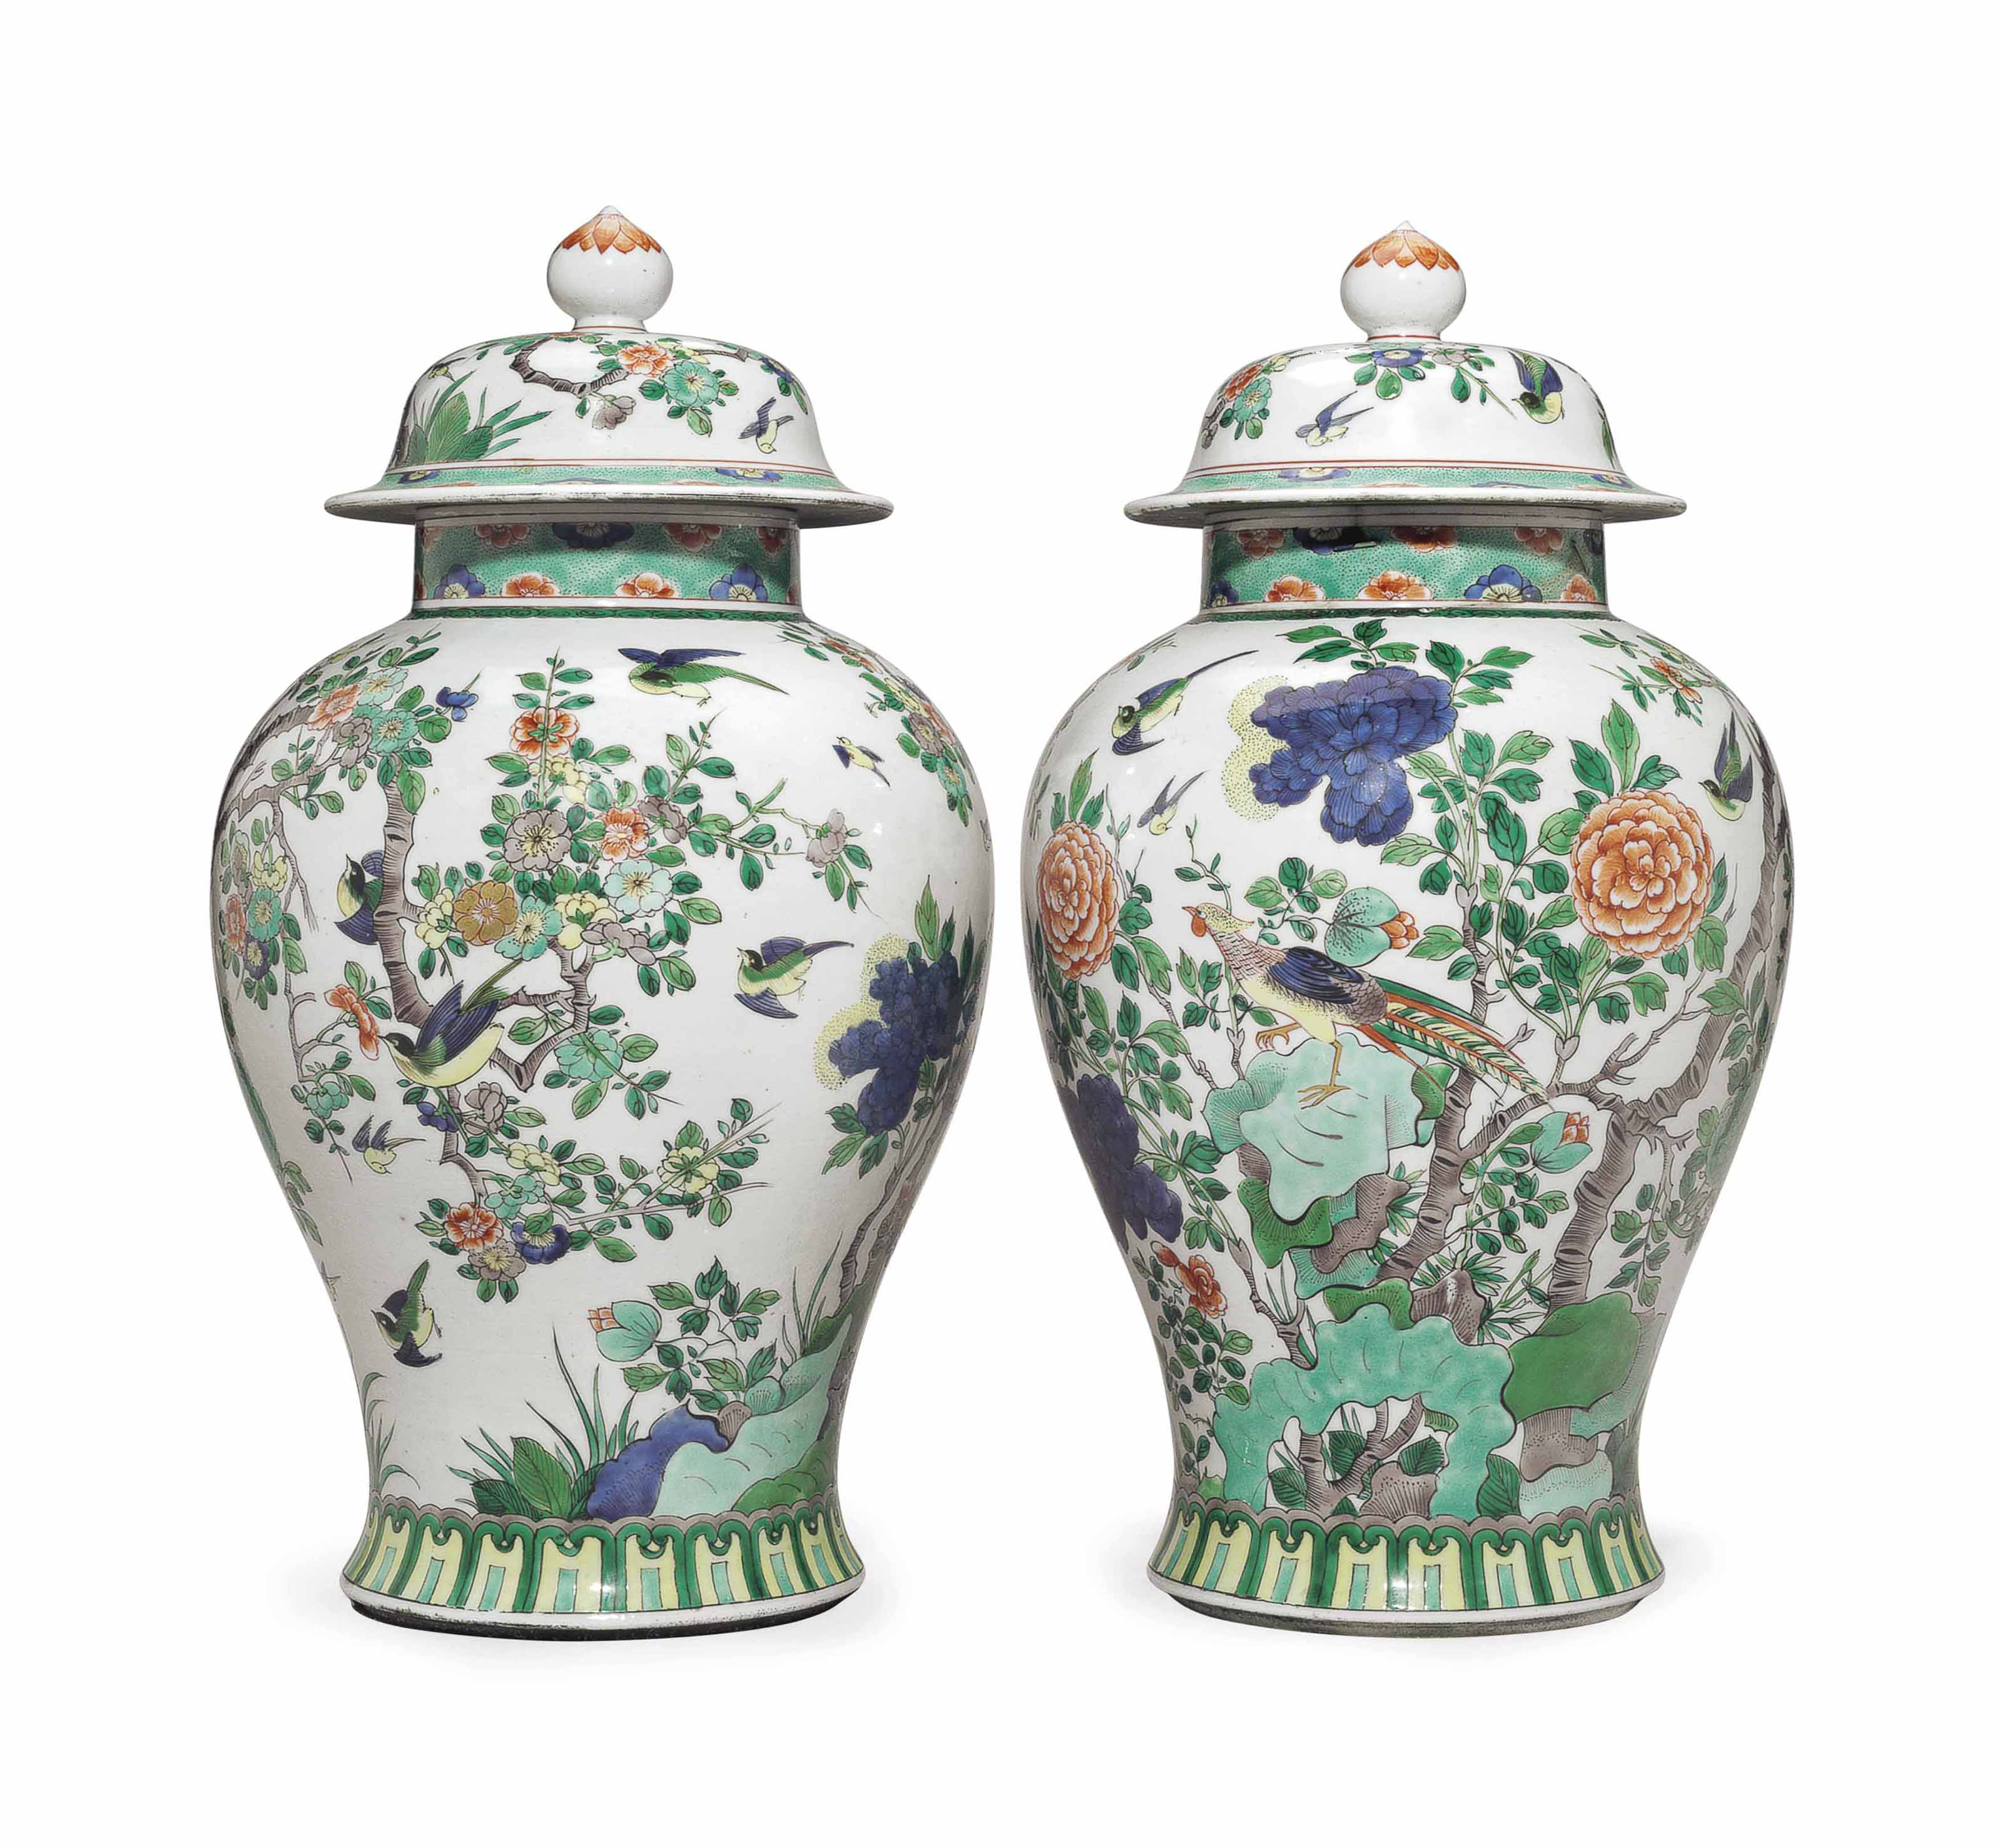 A PAIR OF SAMSON FAMILLE VERTE BALUSTER JARS AND COVERS